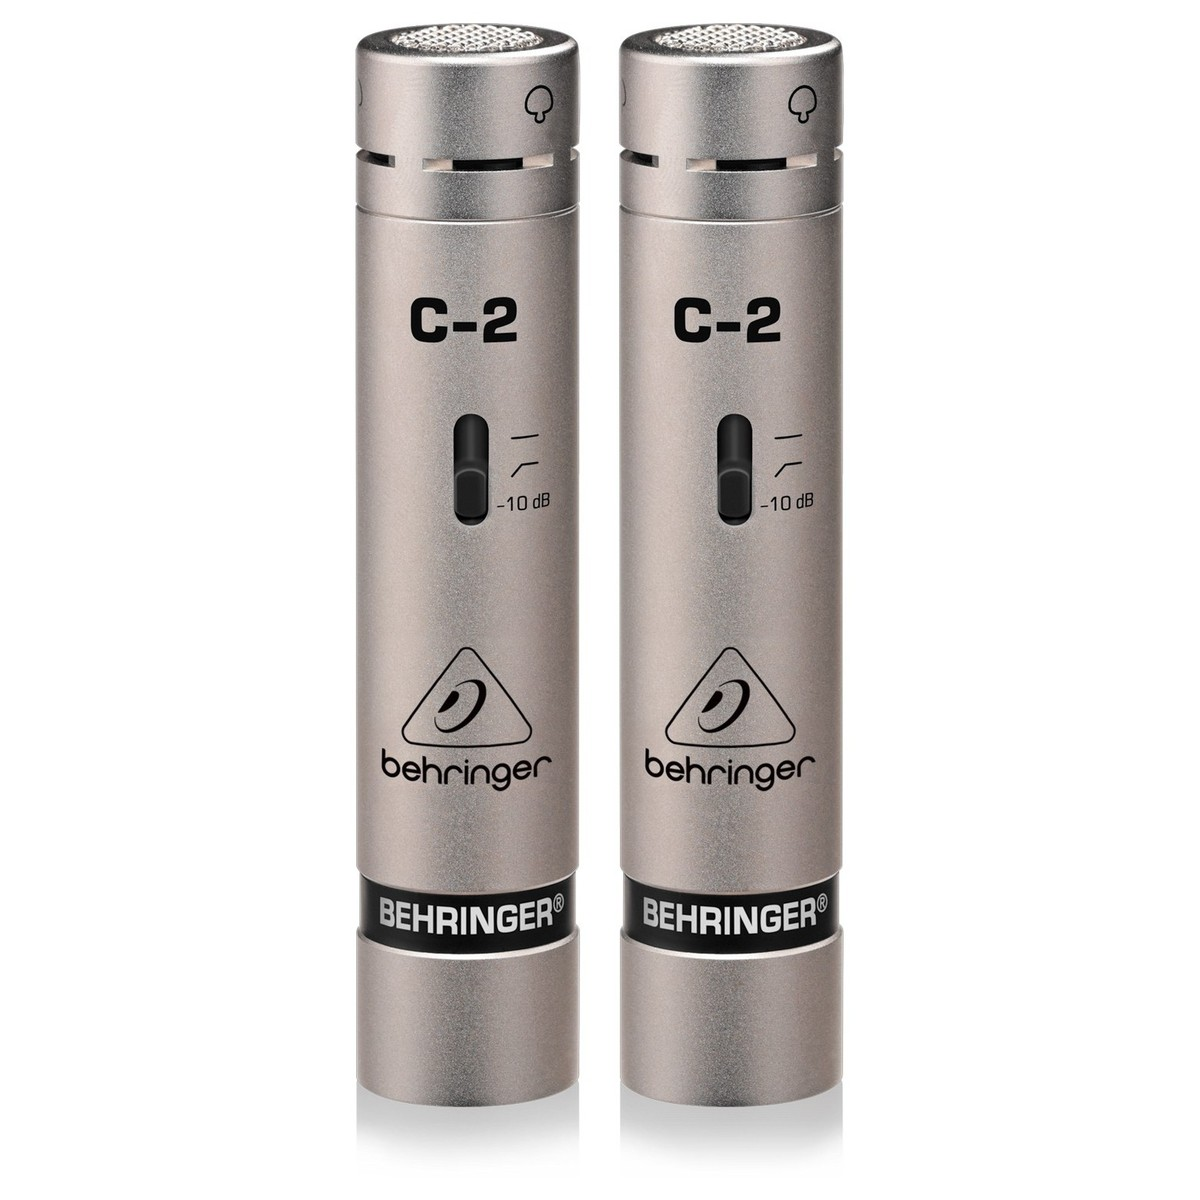 Behringer C 2 Condenser Microphone Matched Pair